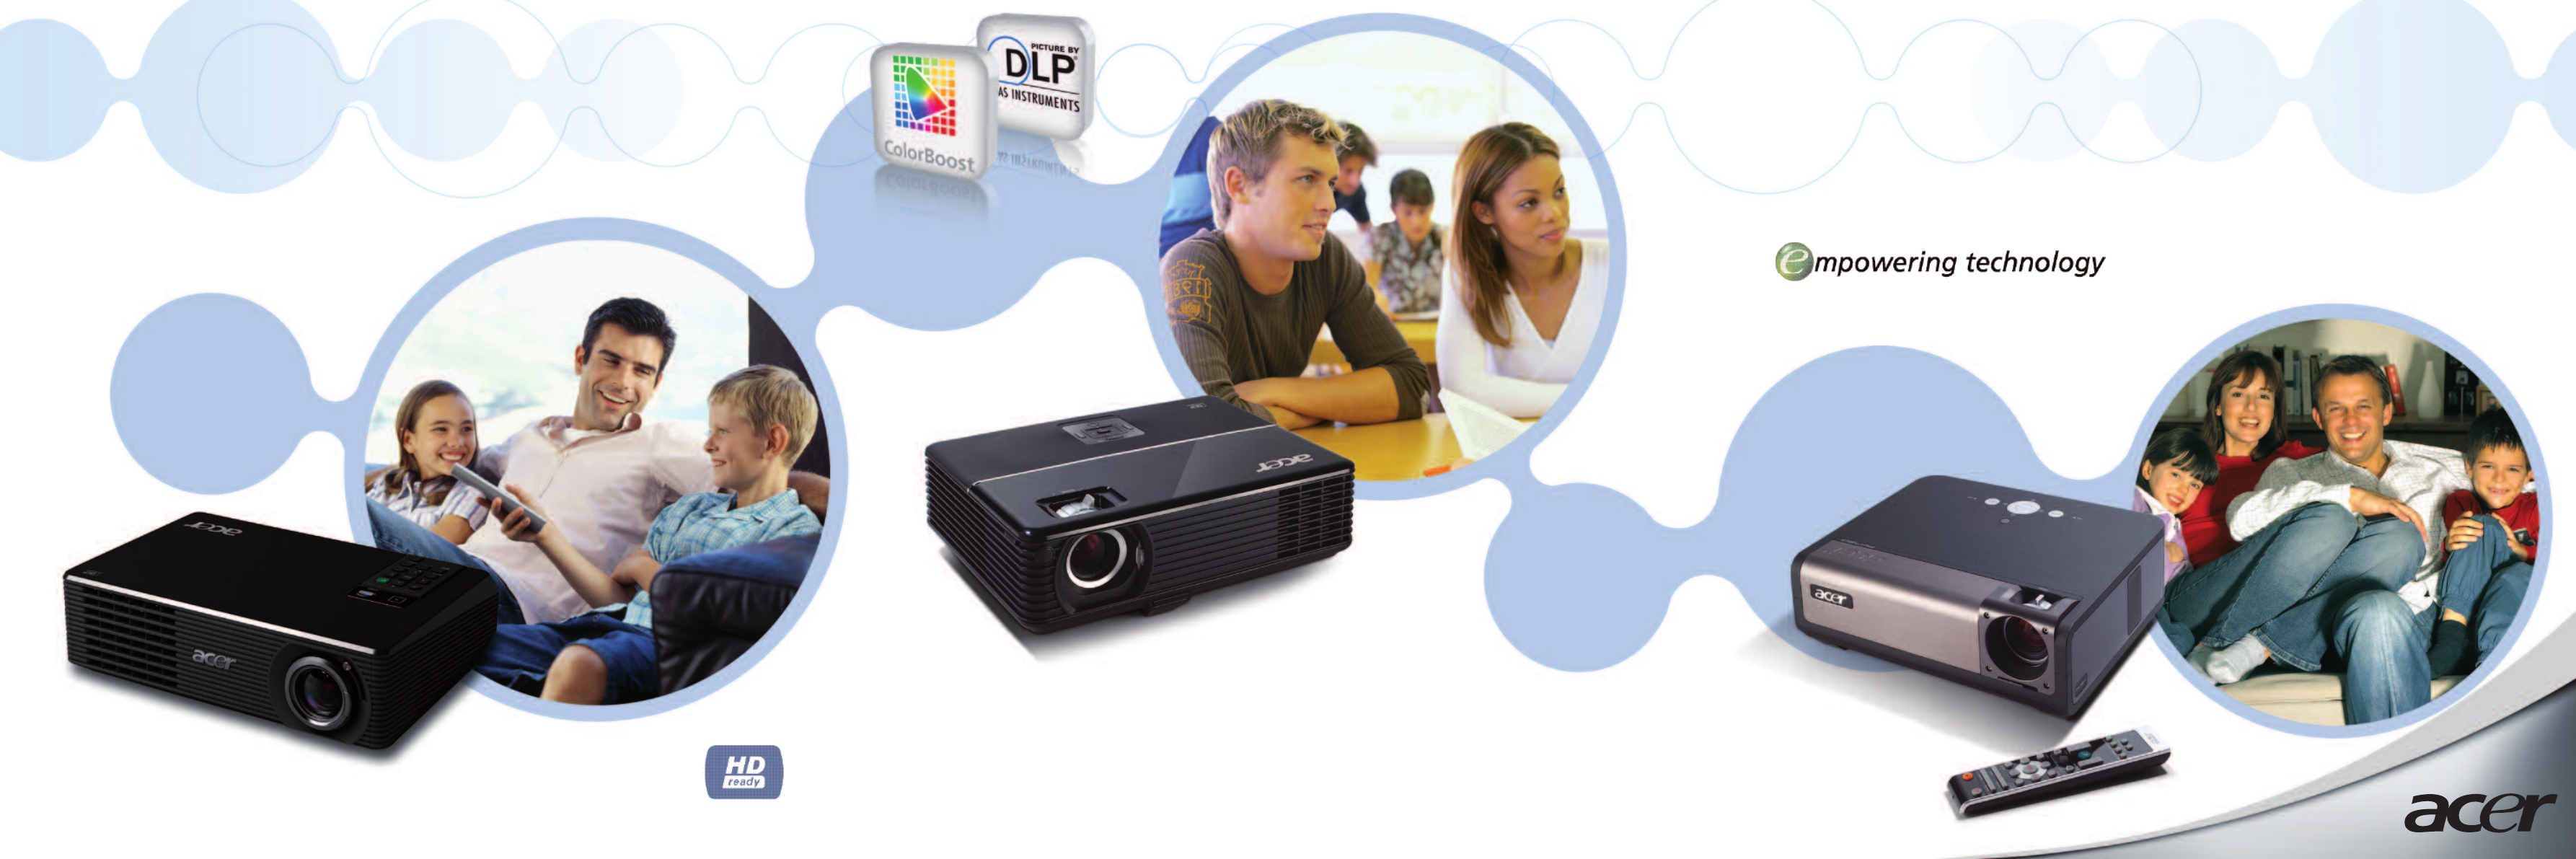 The Acer X1160 and X1260 projectors were designed to make entertainment  simple for all the